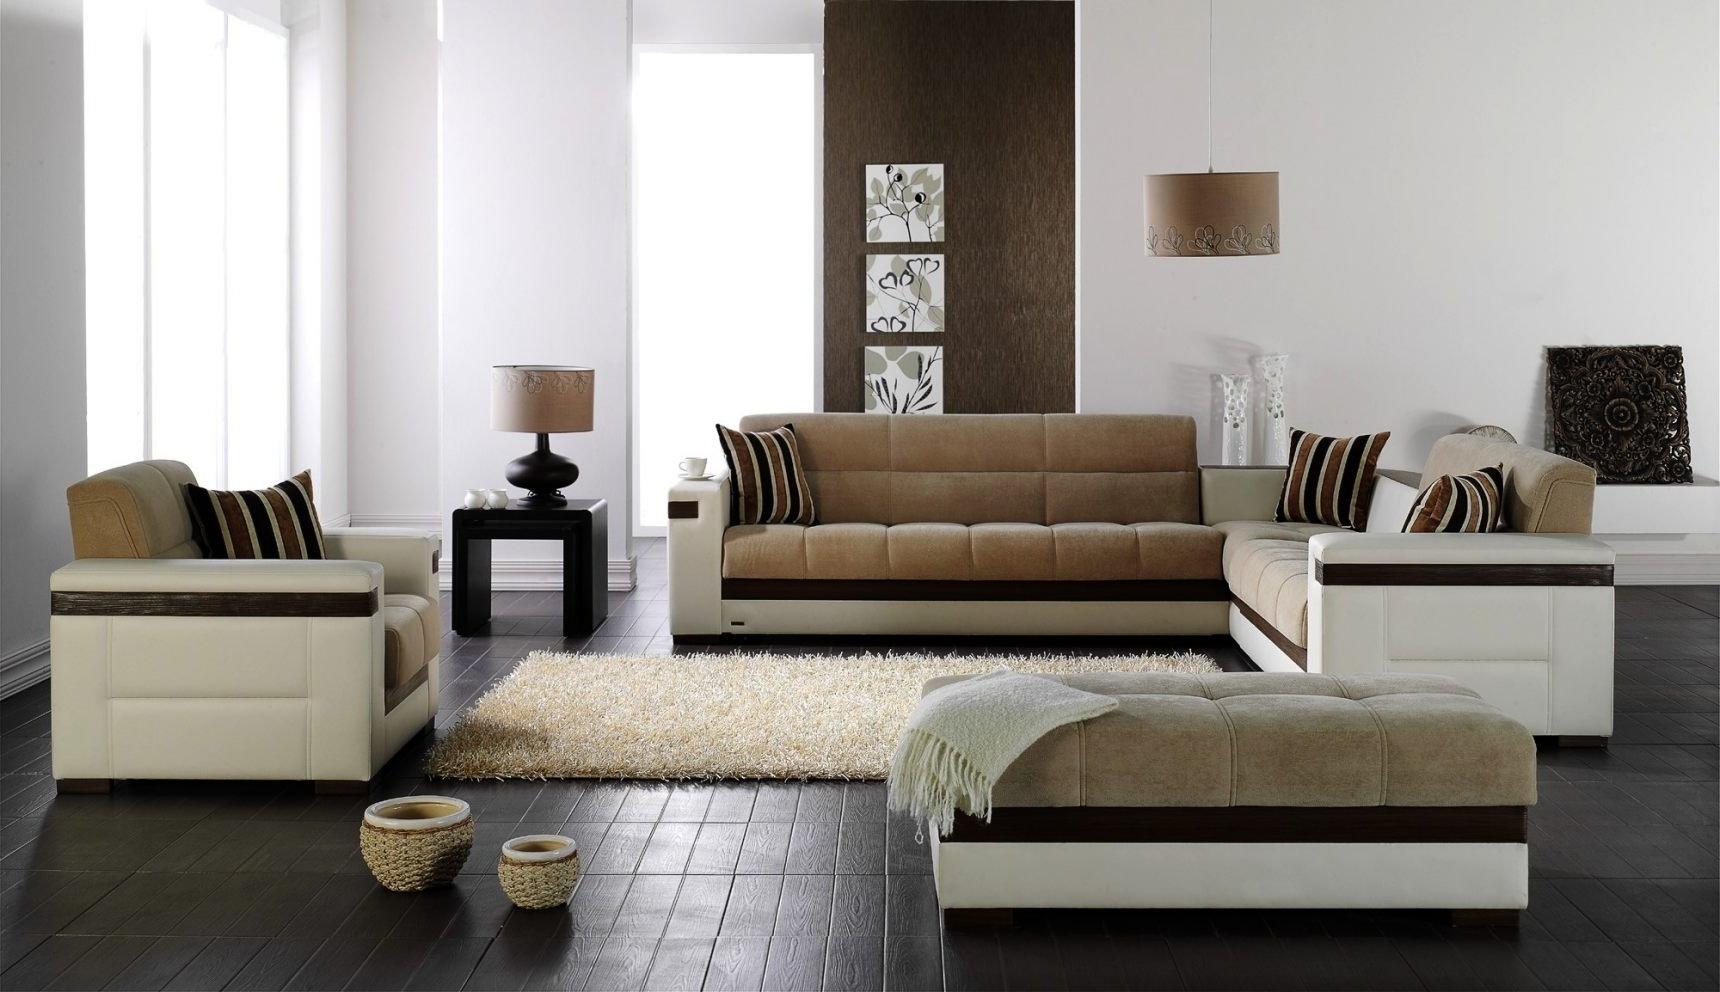 Good Fishborn Within Sectional Sofas From Europe (View 4 of 15)